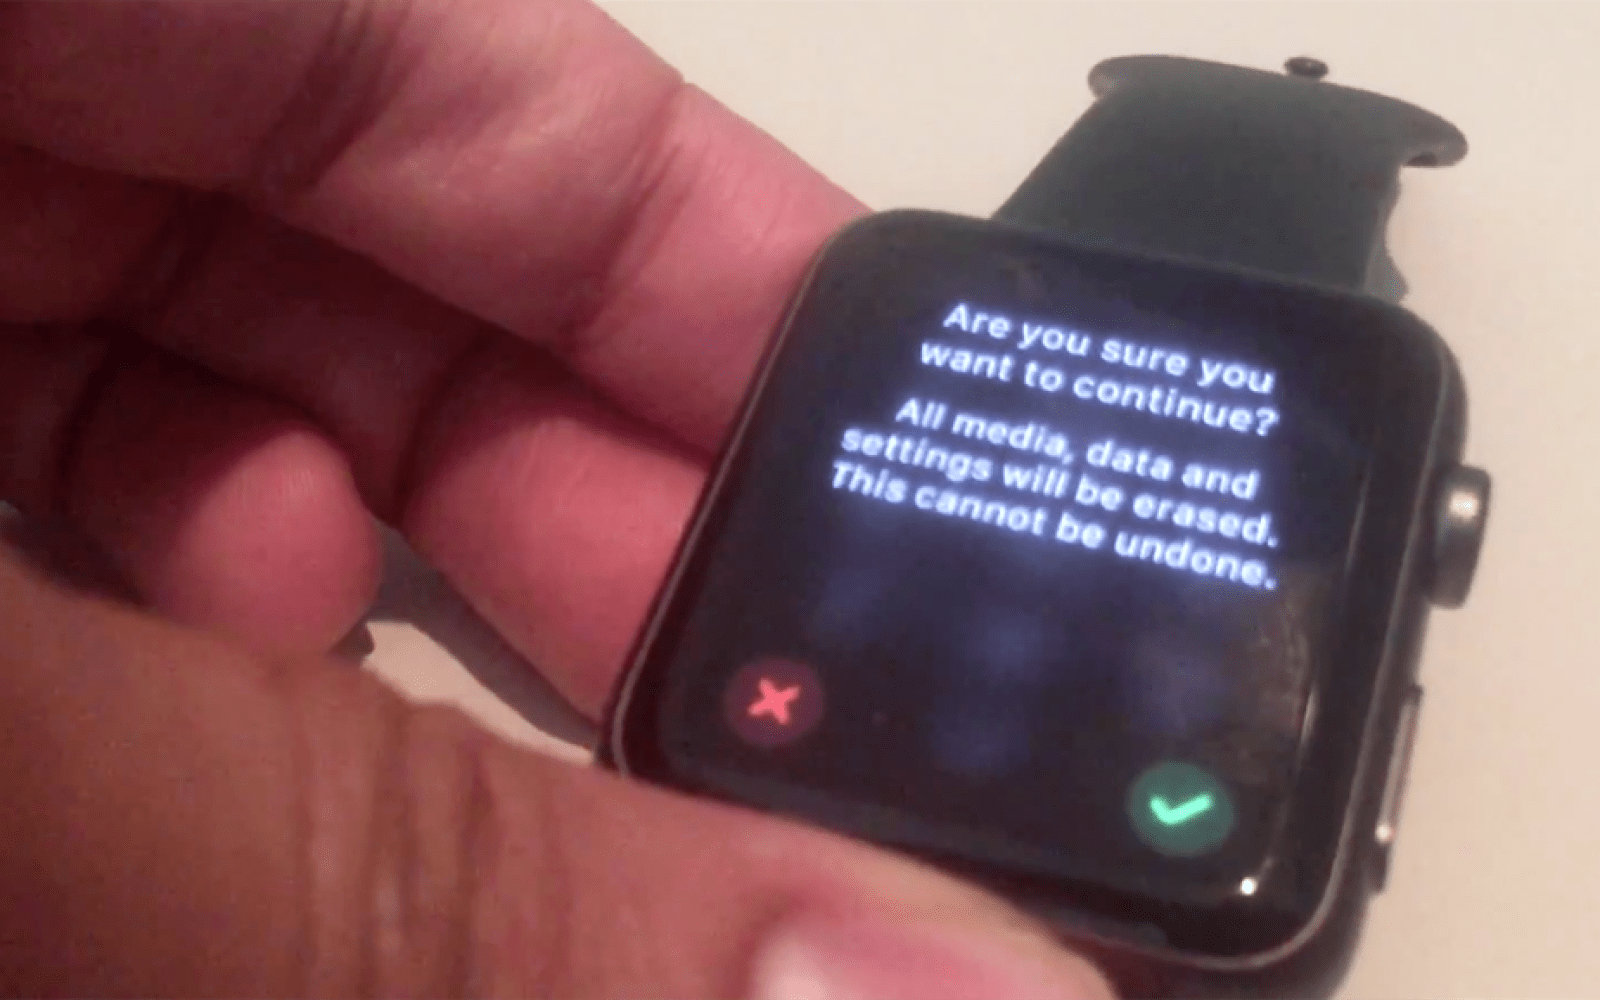 Thieves can bypass Apple Watch passcode to pair a stolen watch with